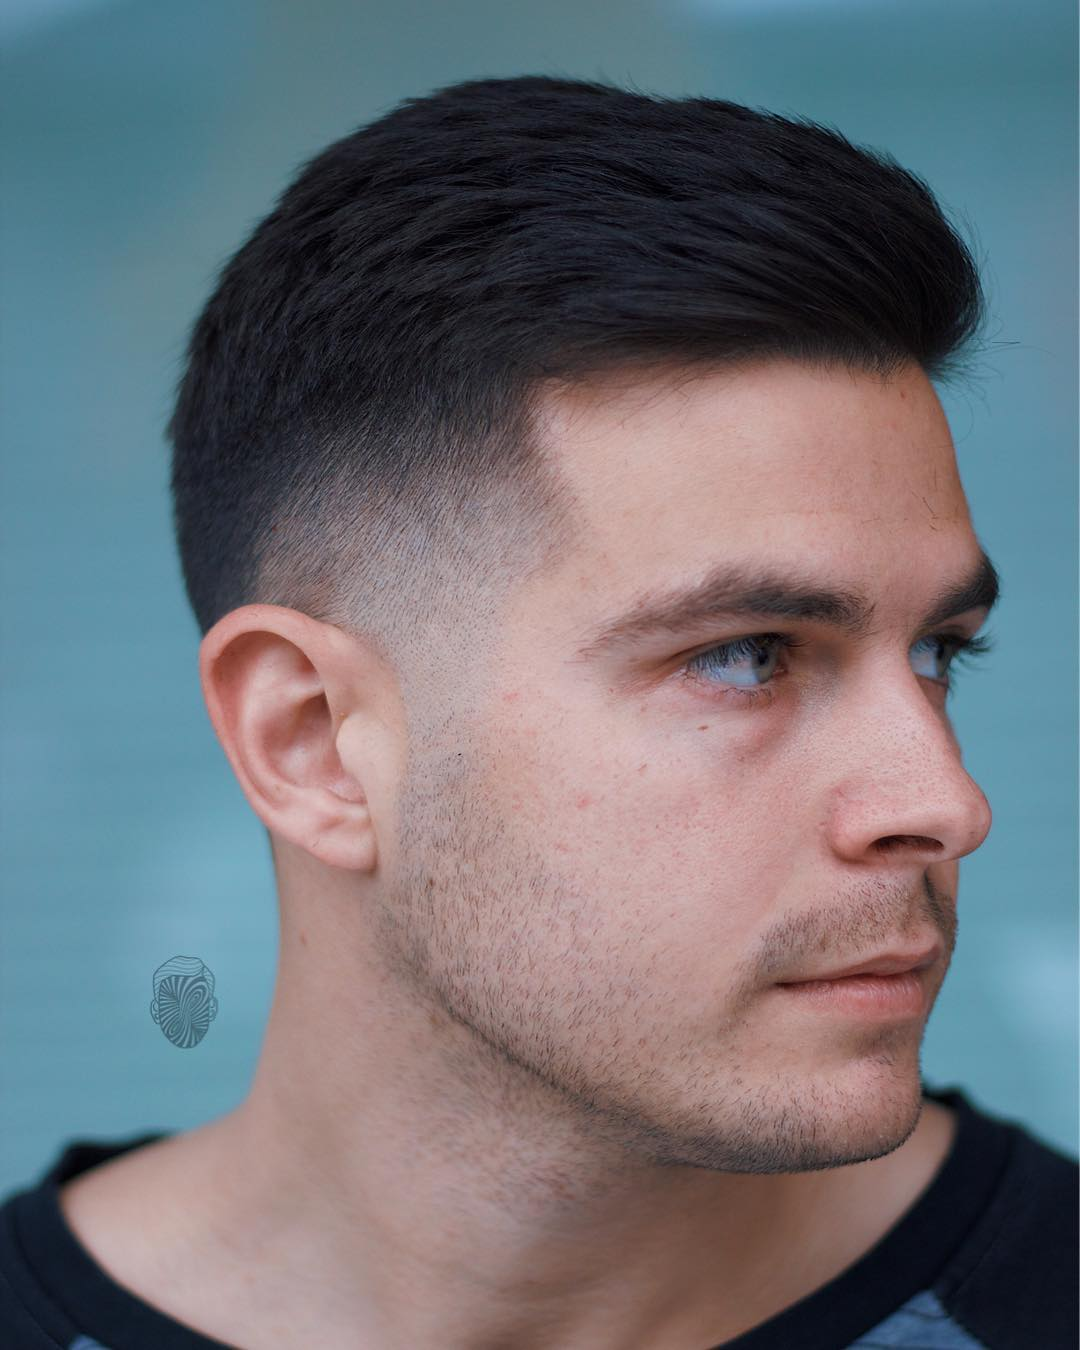 15 Short Hairstyles For Men 2019 Mens Short Haircuts 2019